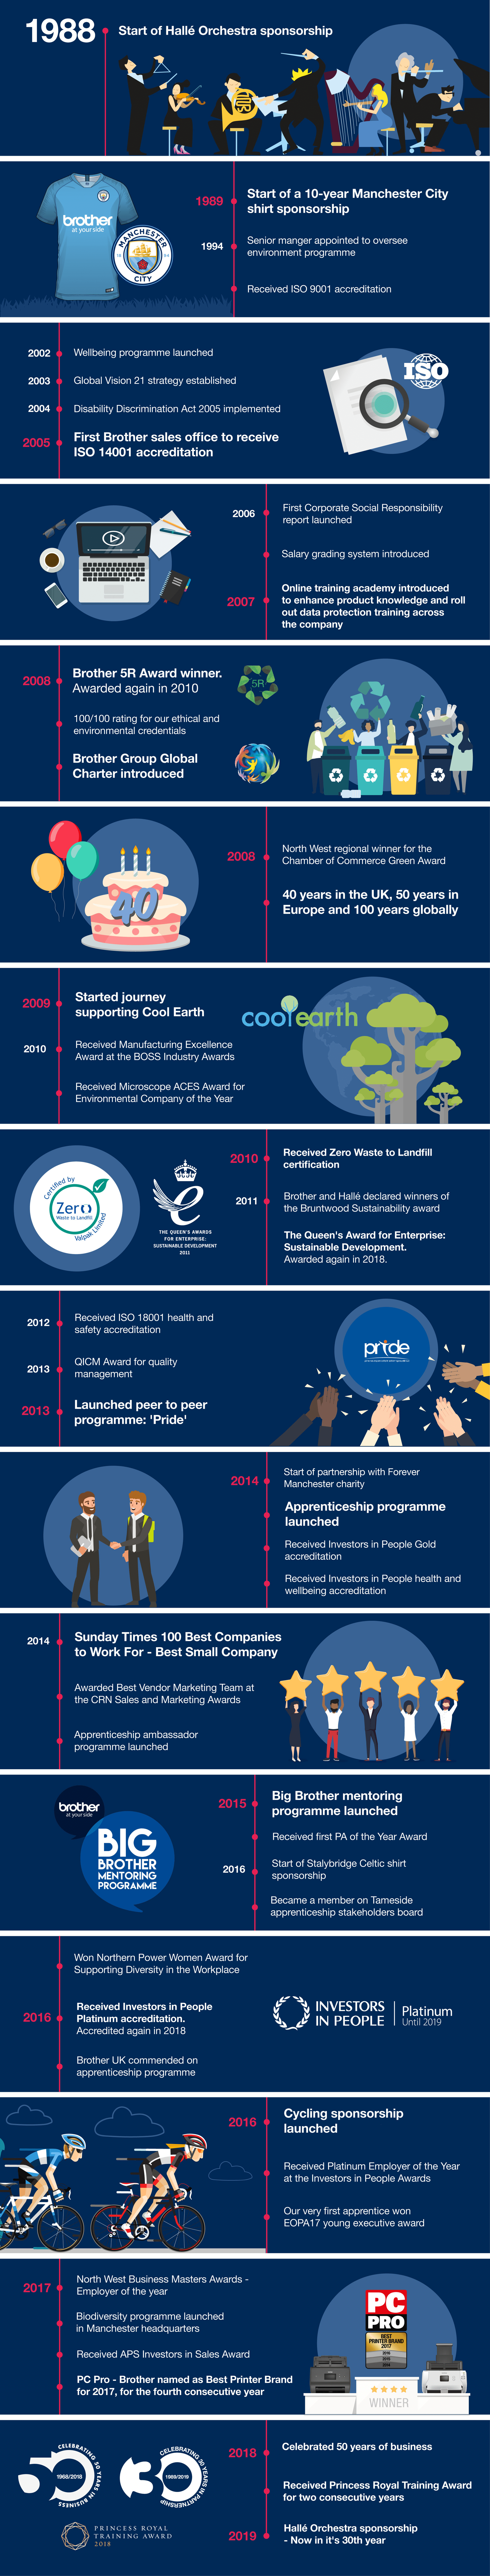 history-brother-infographic